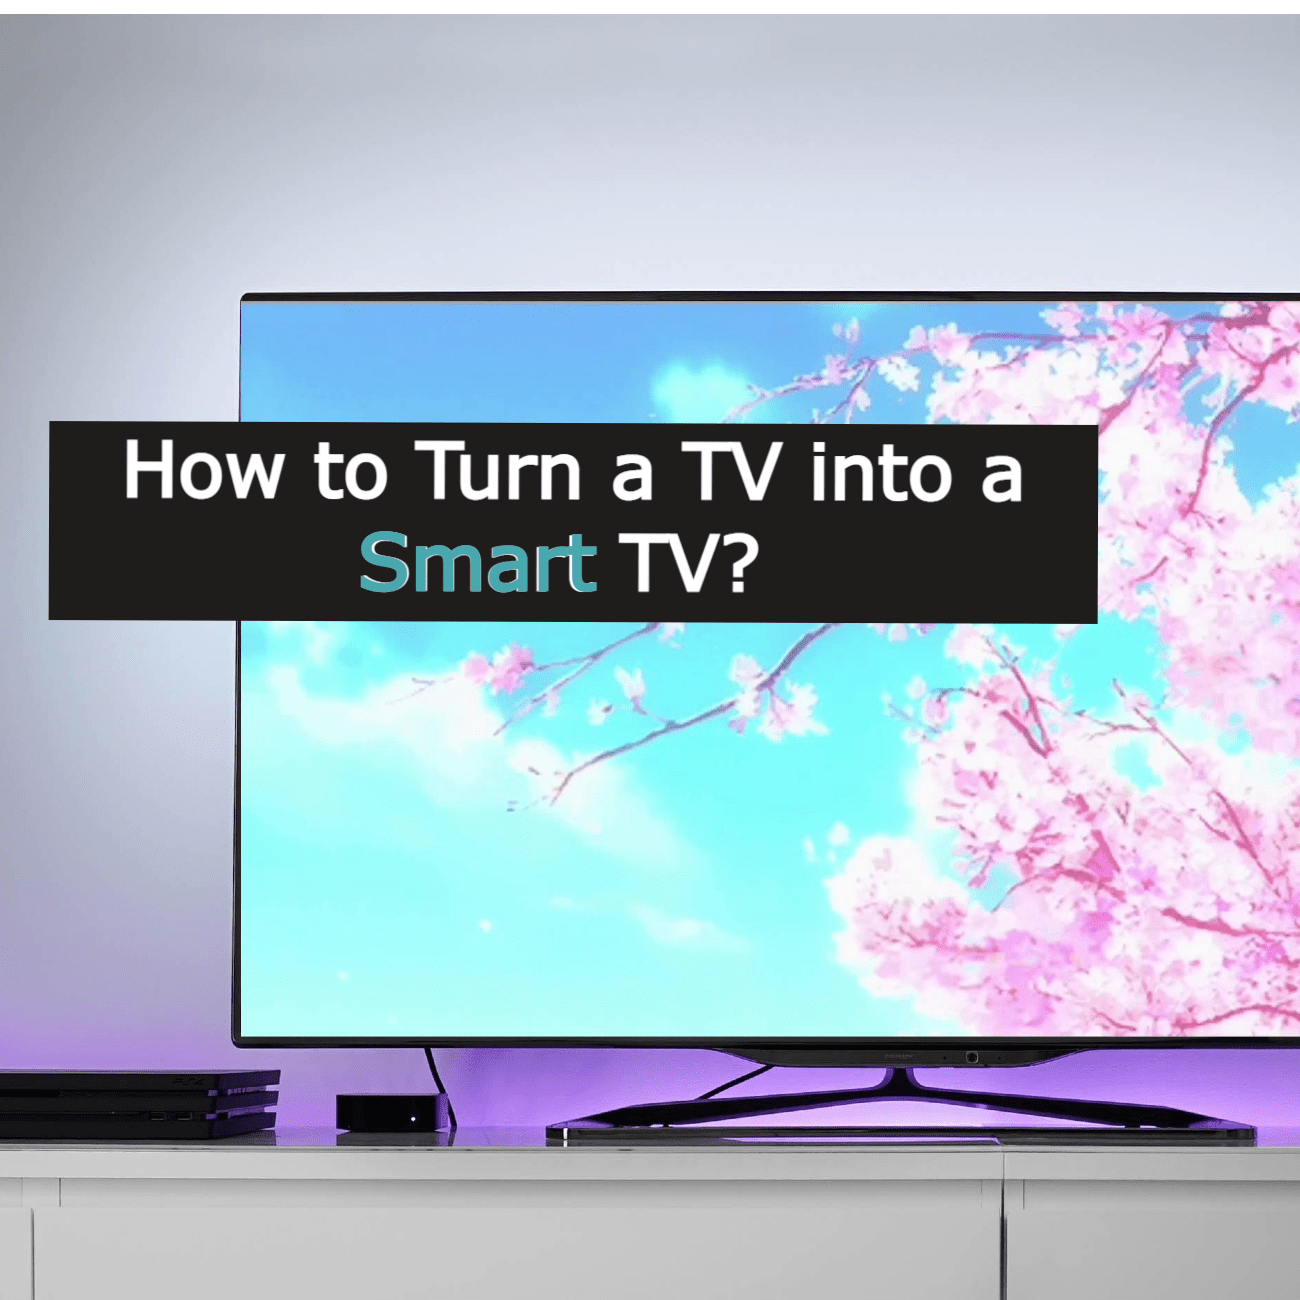 how to turn a TV into a Smart TV